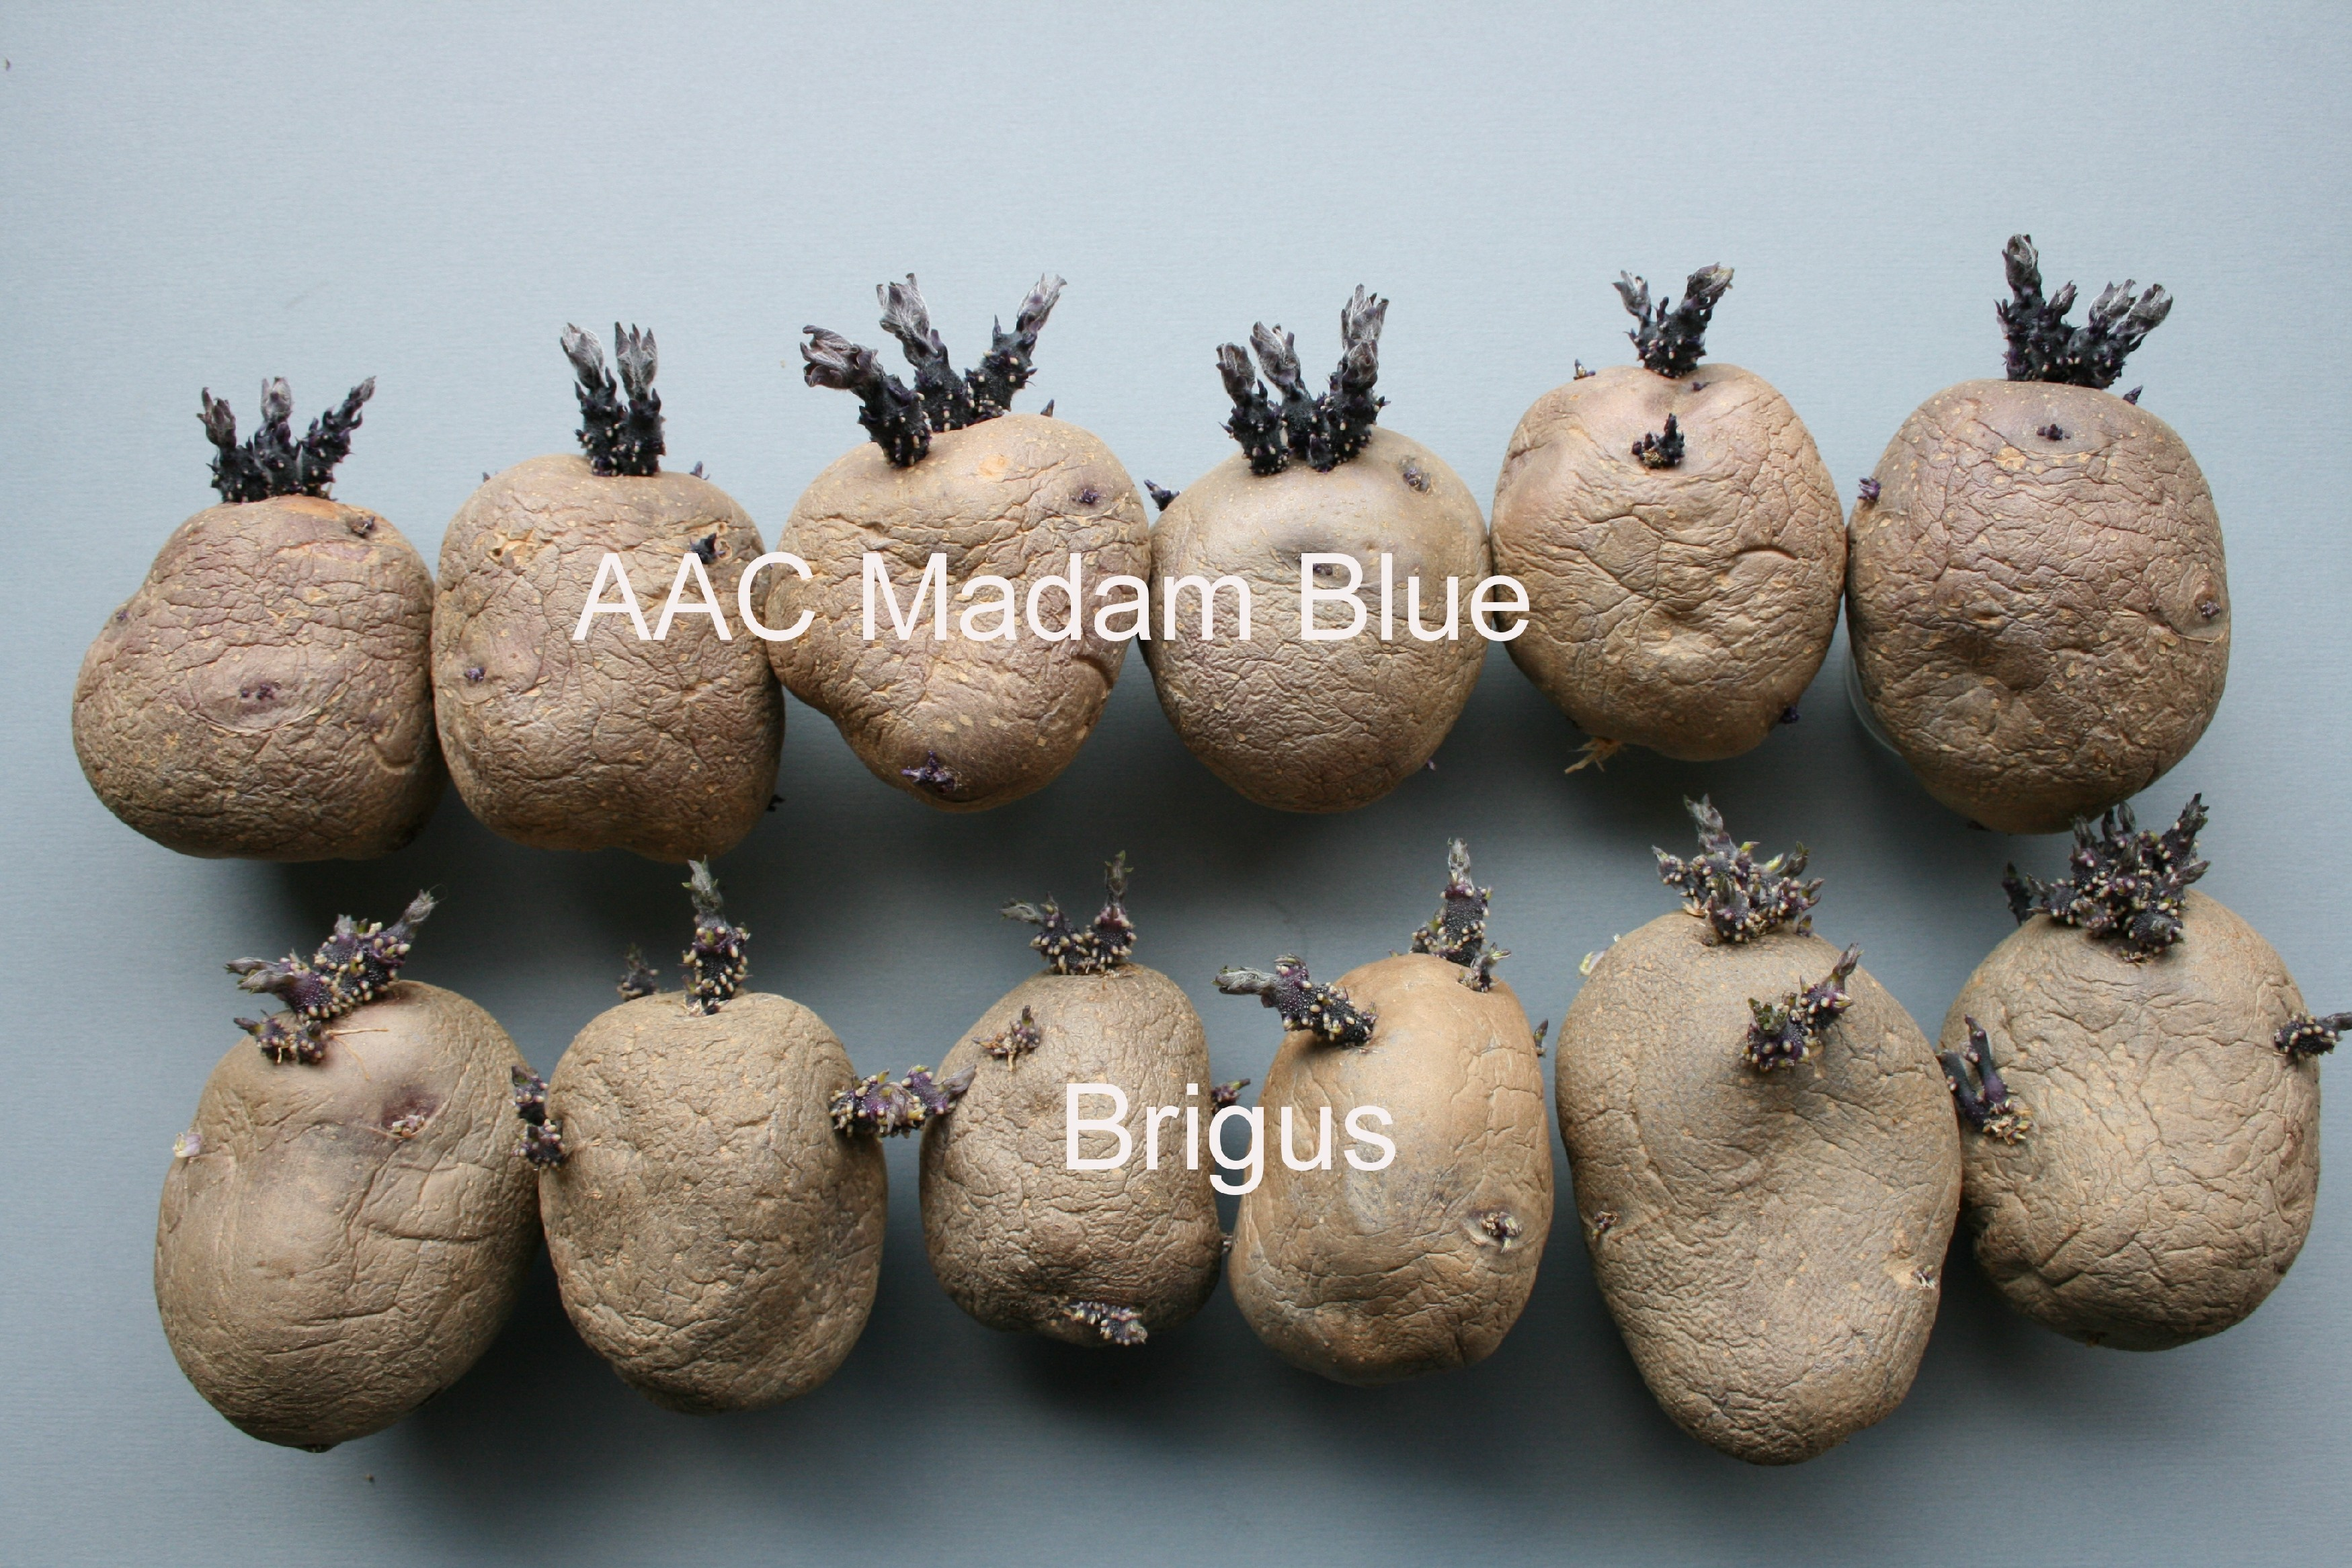 AAC Madam Blue